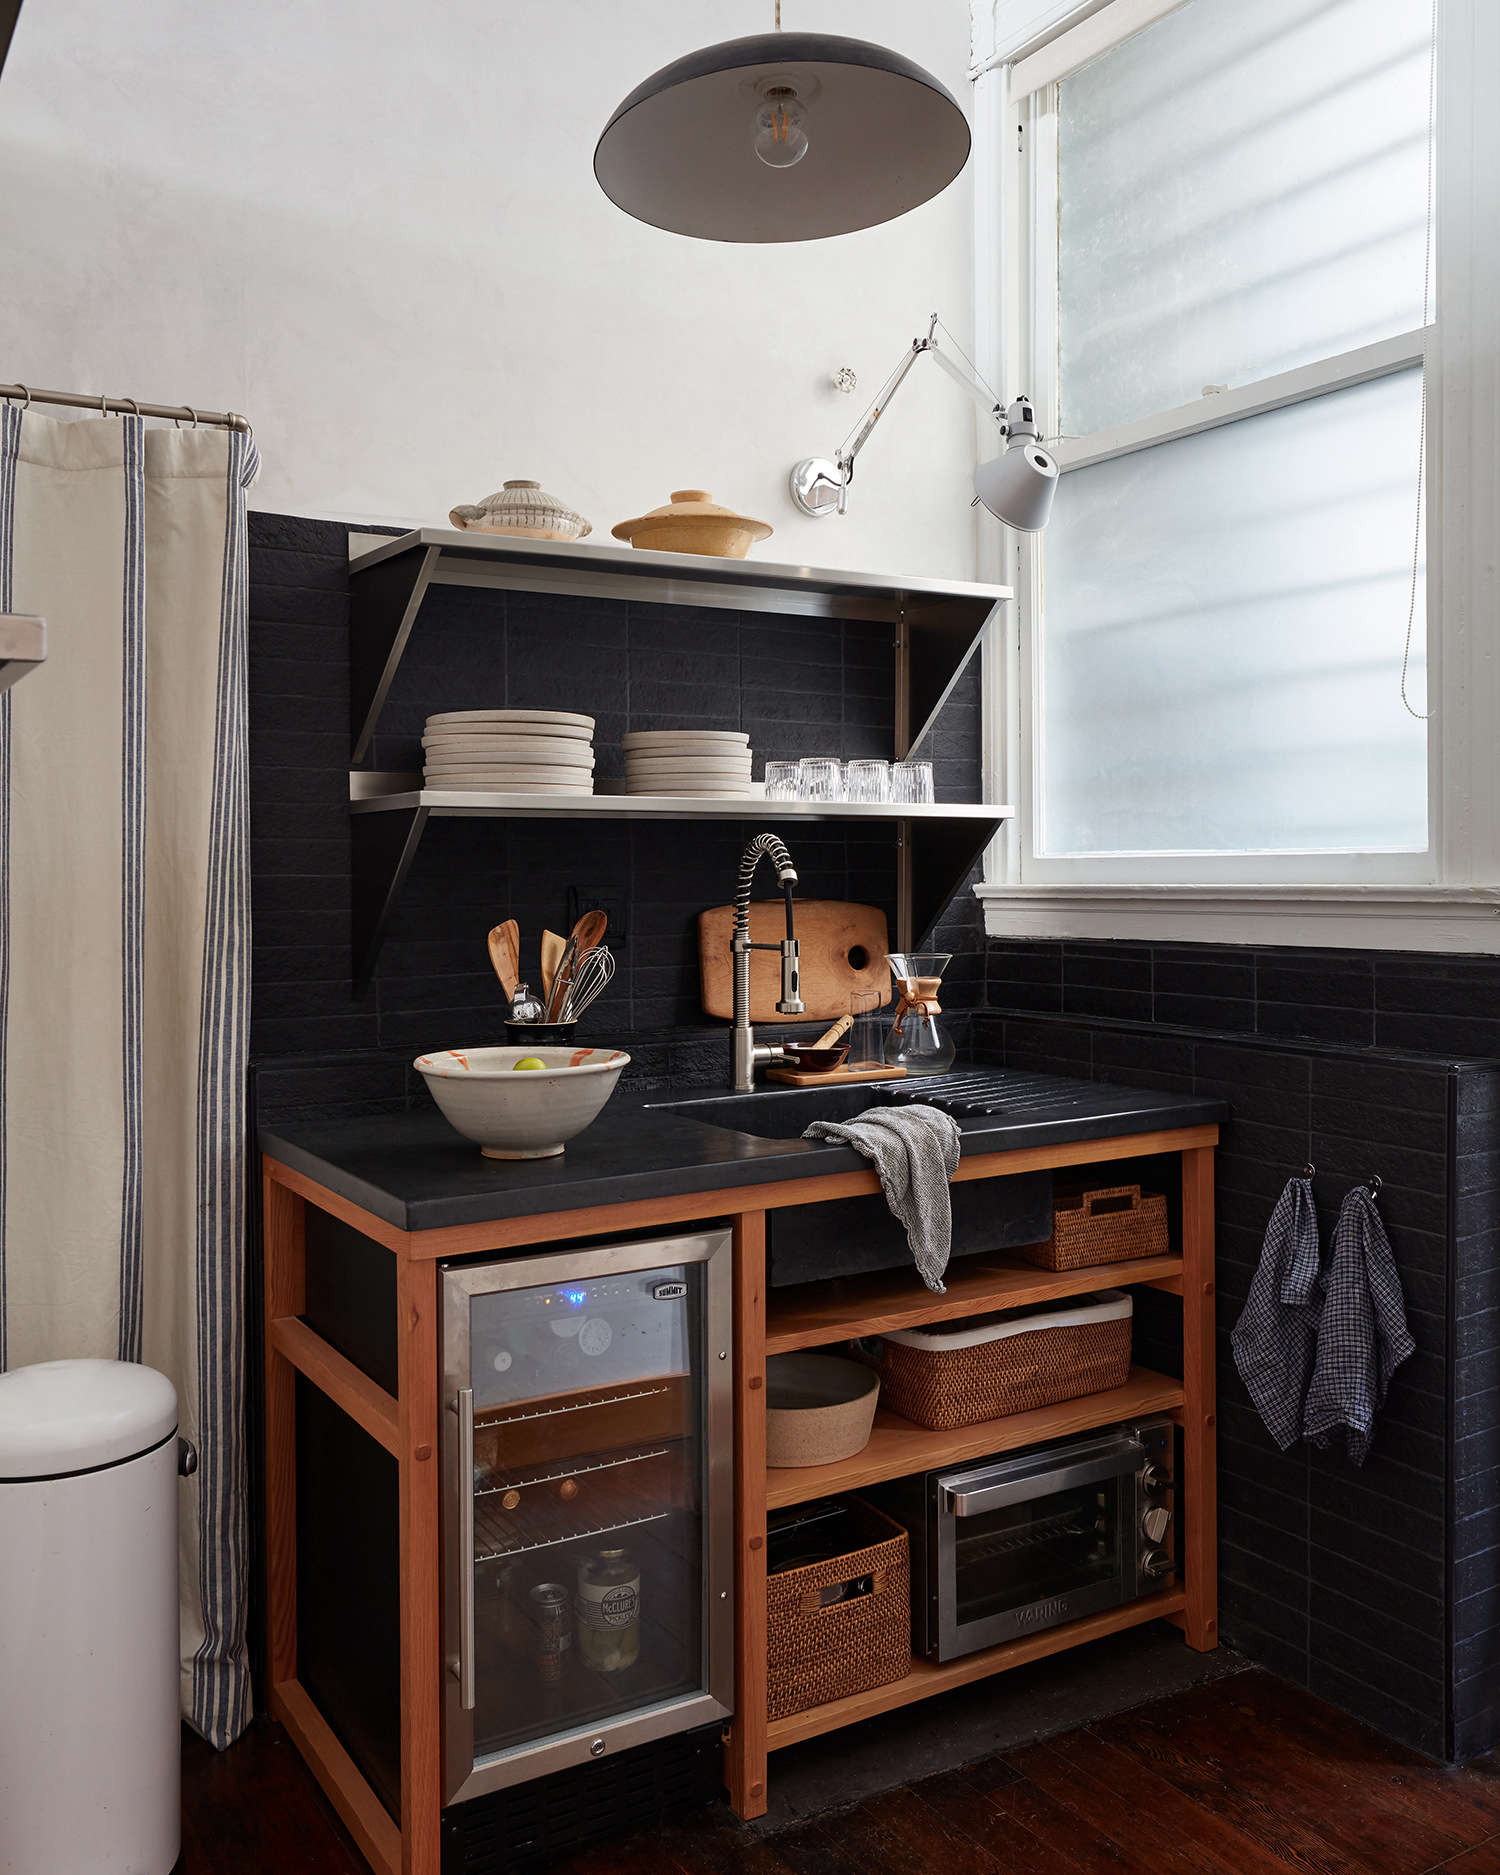 Steal This Look: A Tiny, Chic Kitchenette in San Fancisco - The Organized Home